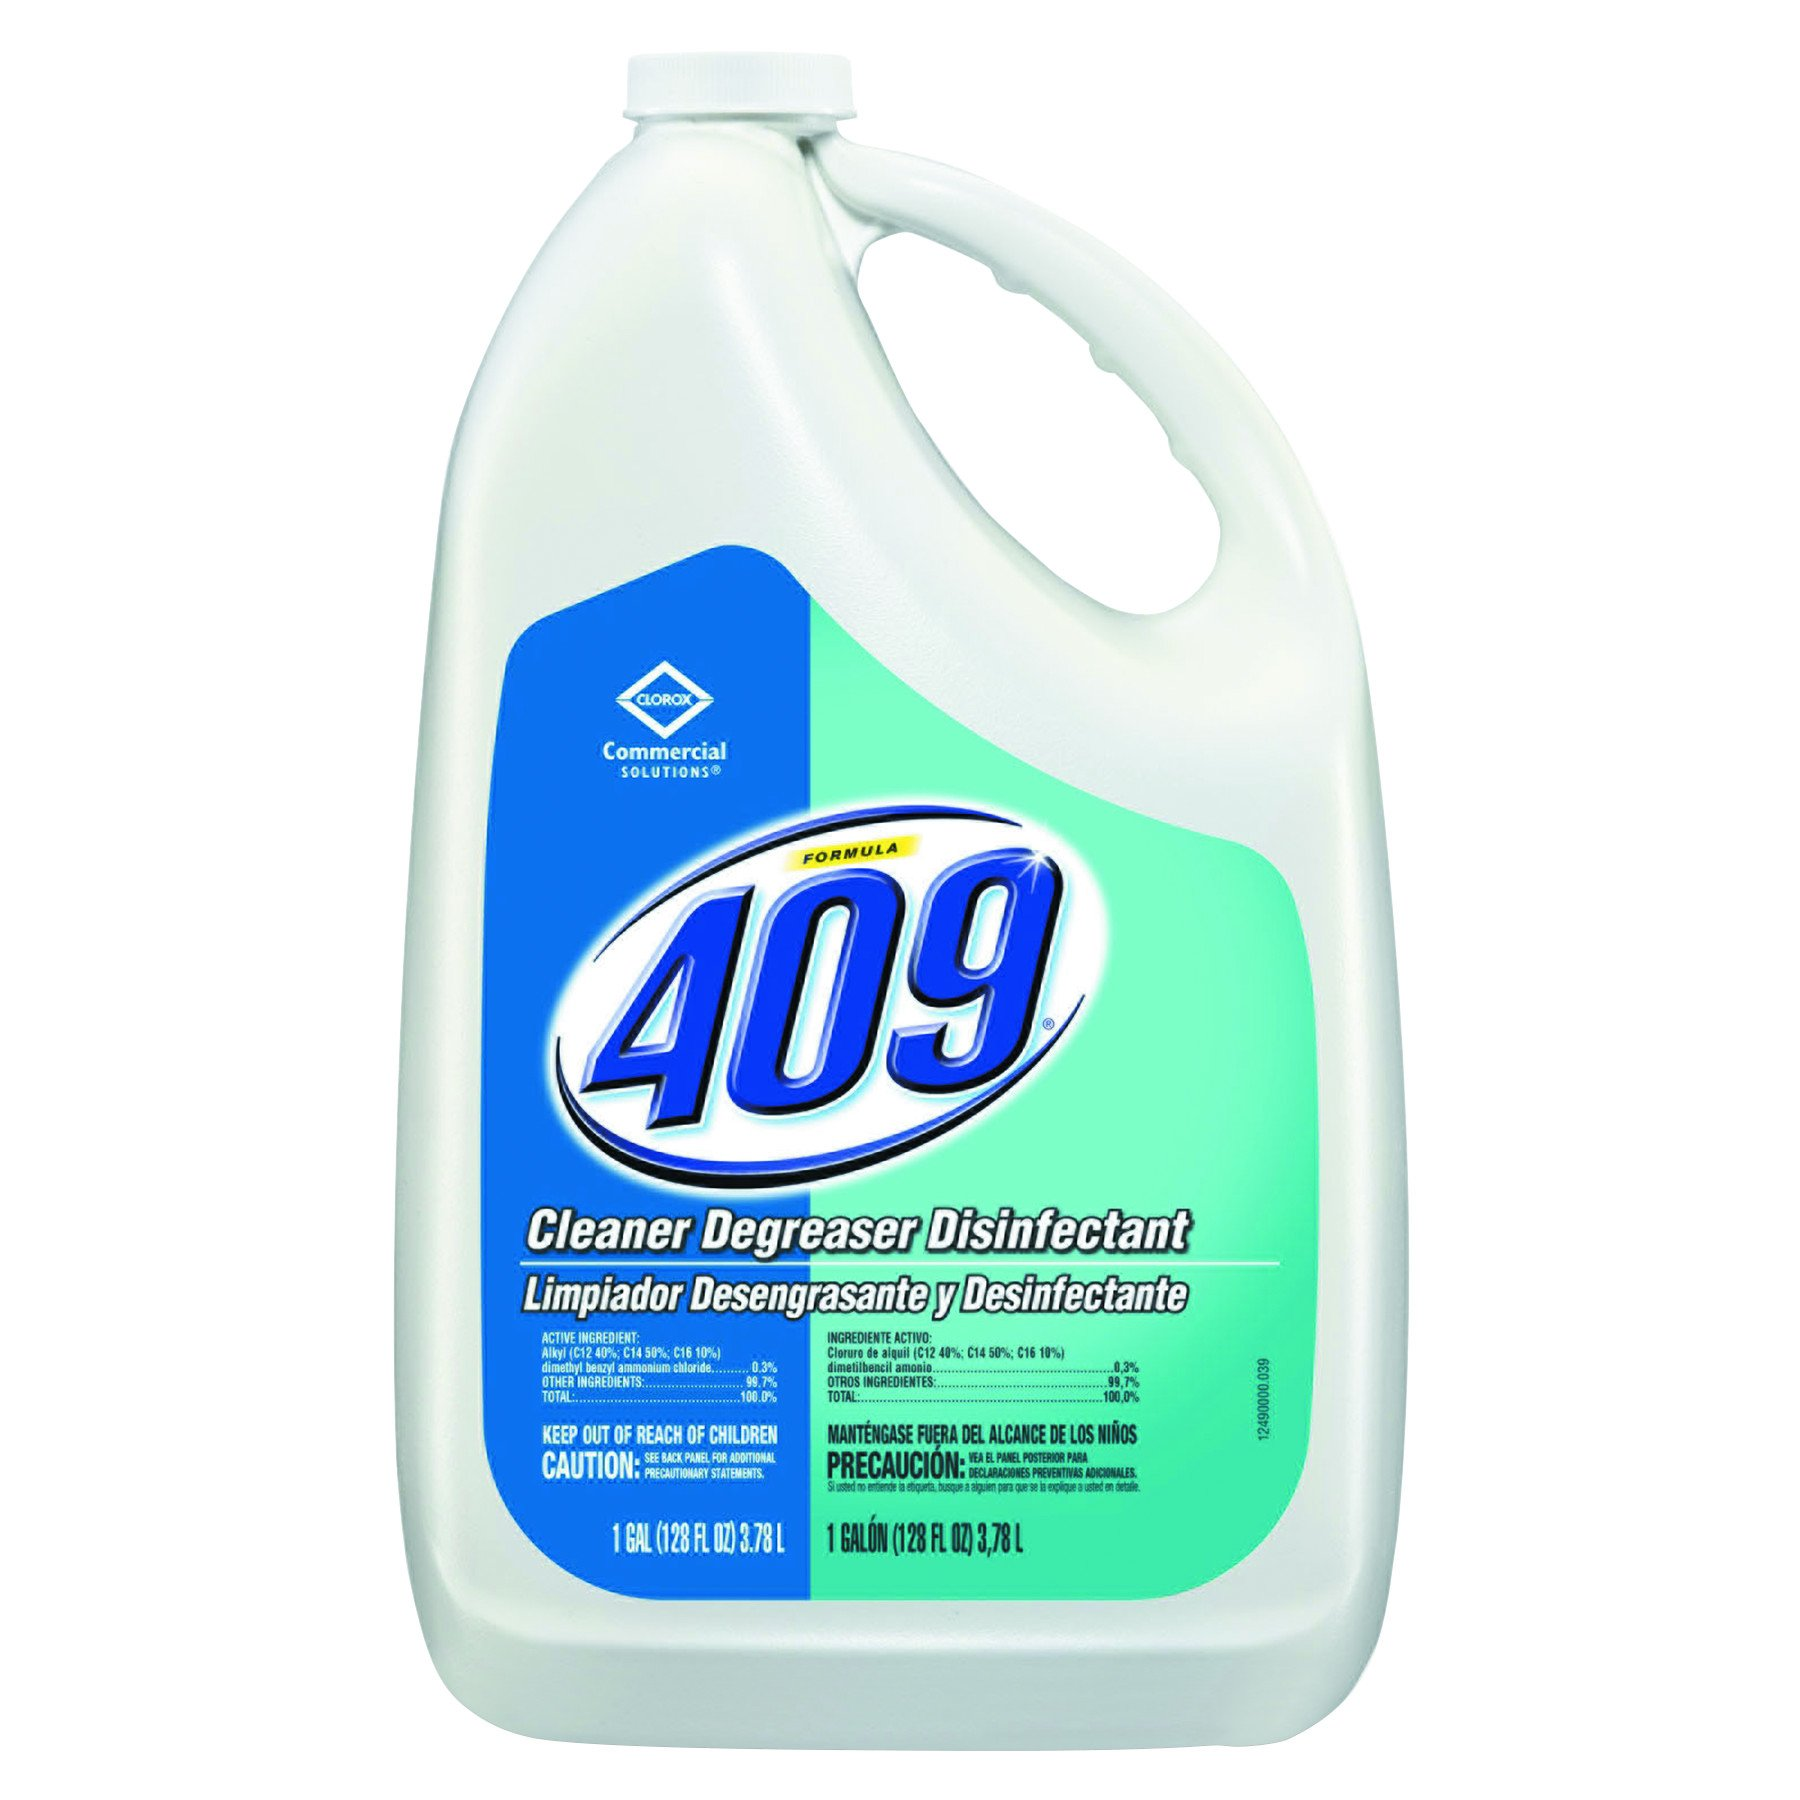 Formula 409 35300CT Cleaner Degreaser Disinfectant, Refill, 128 oz (Case of 4)